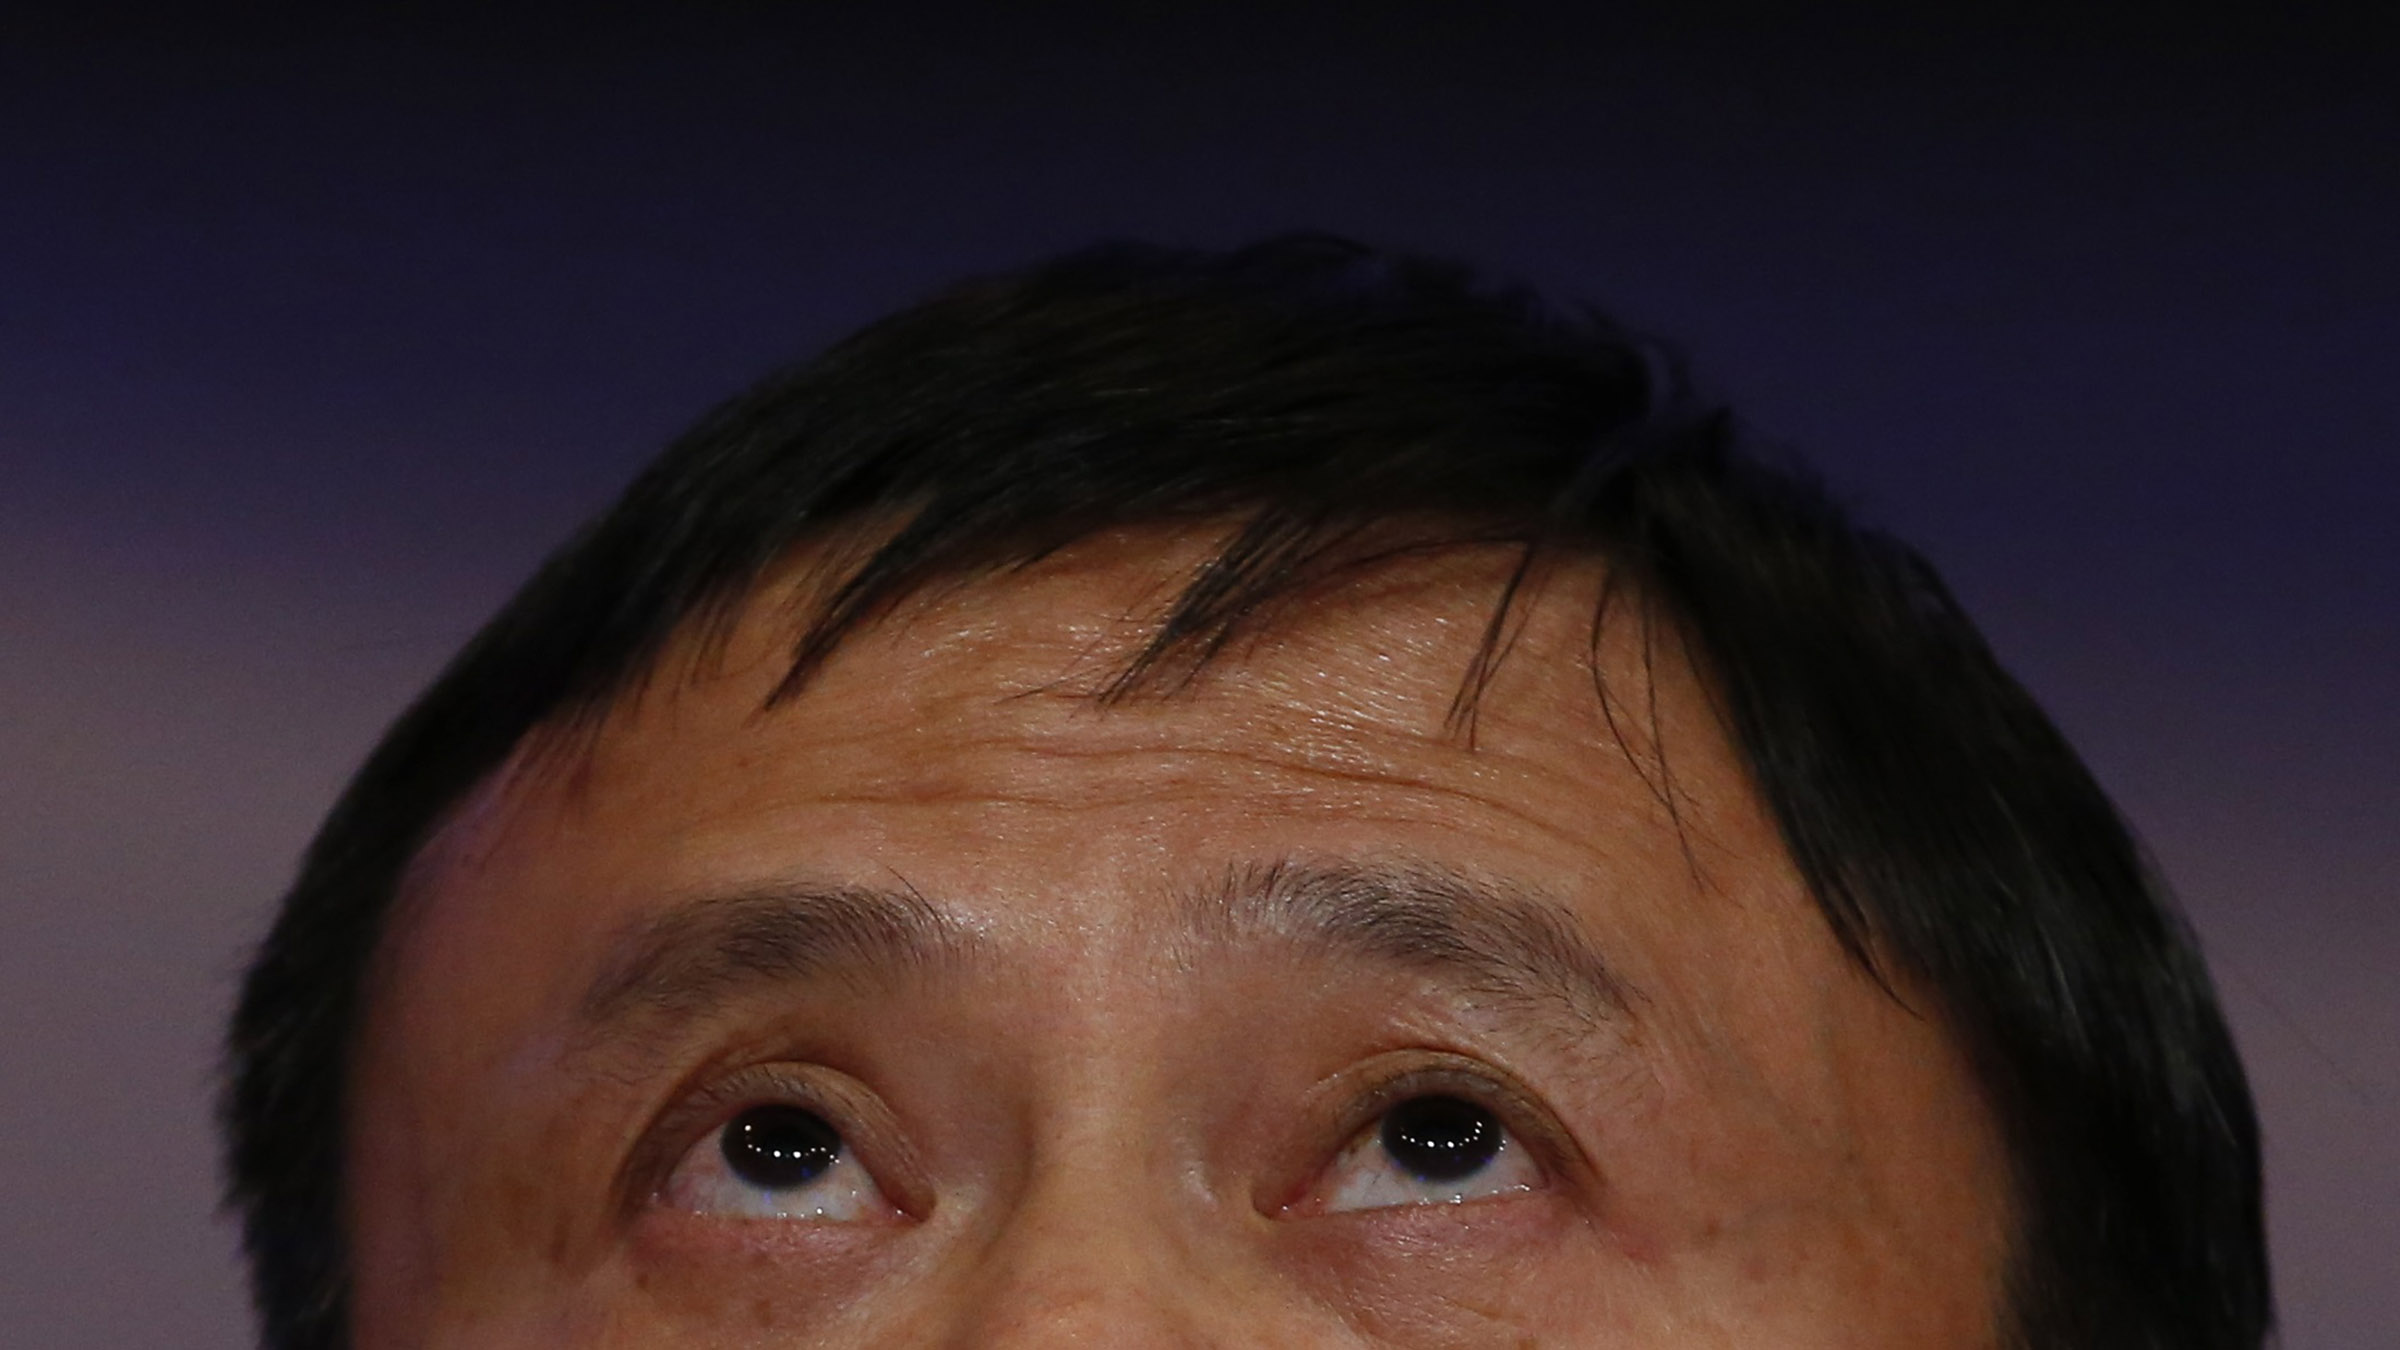 Jack Ma, Founder and Executive Chairman of Alibaba Group, looks up during the session 'An Insight, An Idea with Jack Ma' in the Swiss mountain resort of Davos January 23, 2015. More than 1,500 business leaders and 40 heads of state or government attend the Jan. 21-24 meeting of the World Economic Forum (WEF) to network and discuss big themes, from the price of oil to the future of the Internet. This year they are meeting in the midst of upheaval, with security forces on heightened alert after attacks in Paris, the European Central Bank considering a radical government bond-buying programme and the safe-haven Swiss franc rocketing.          REUTERS/Ruben Sprich (SWITZERLAND  - Tags: BUSINESS HEADSHOT POLITICS)   - RTR4MLE5